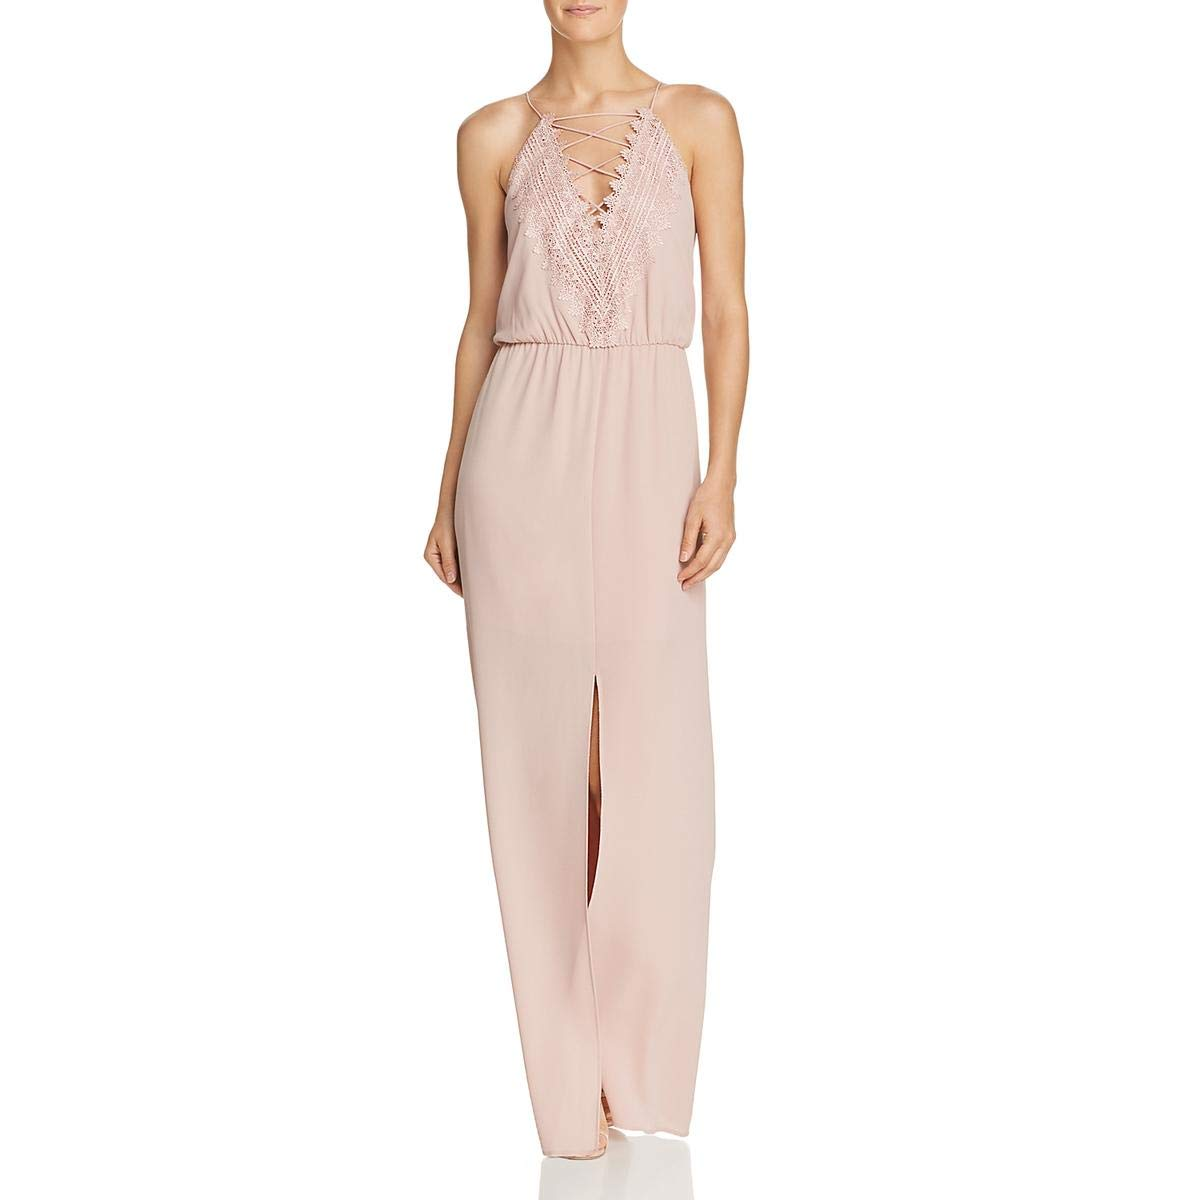 Pink Adobe WAYF Womens Posie Crepe Lace Inset Maxi Dress